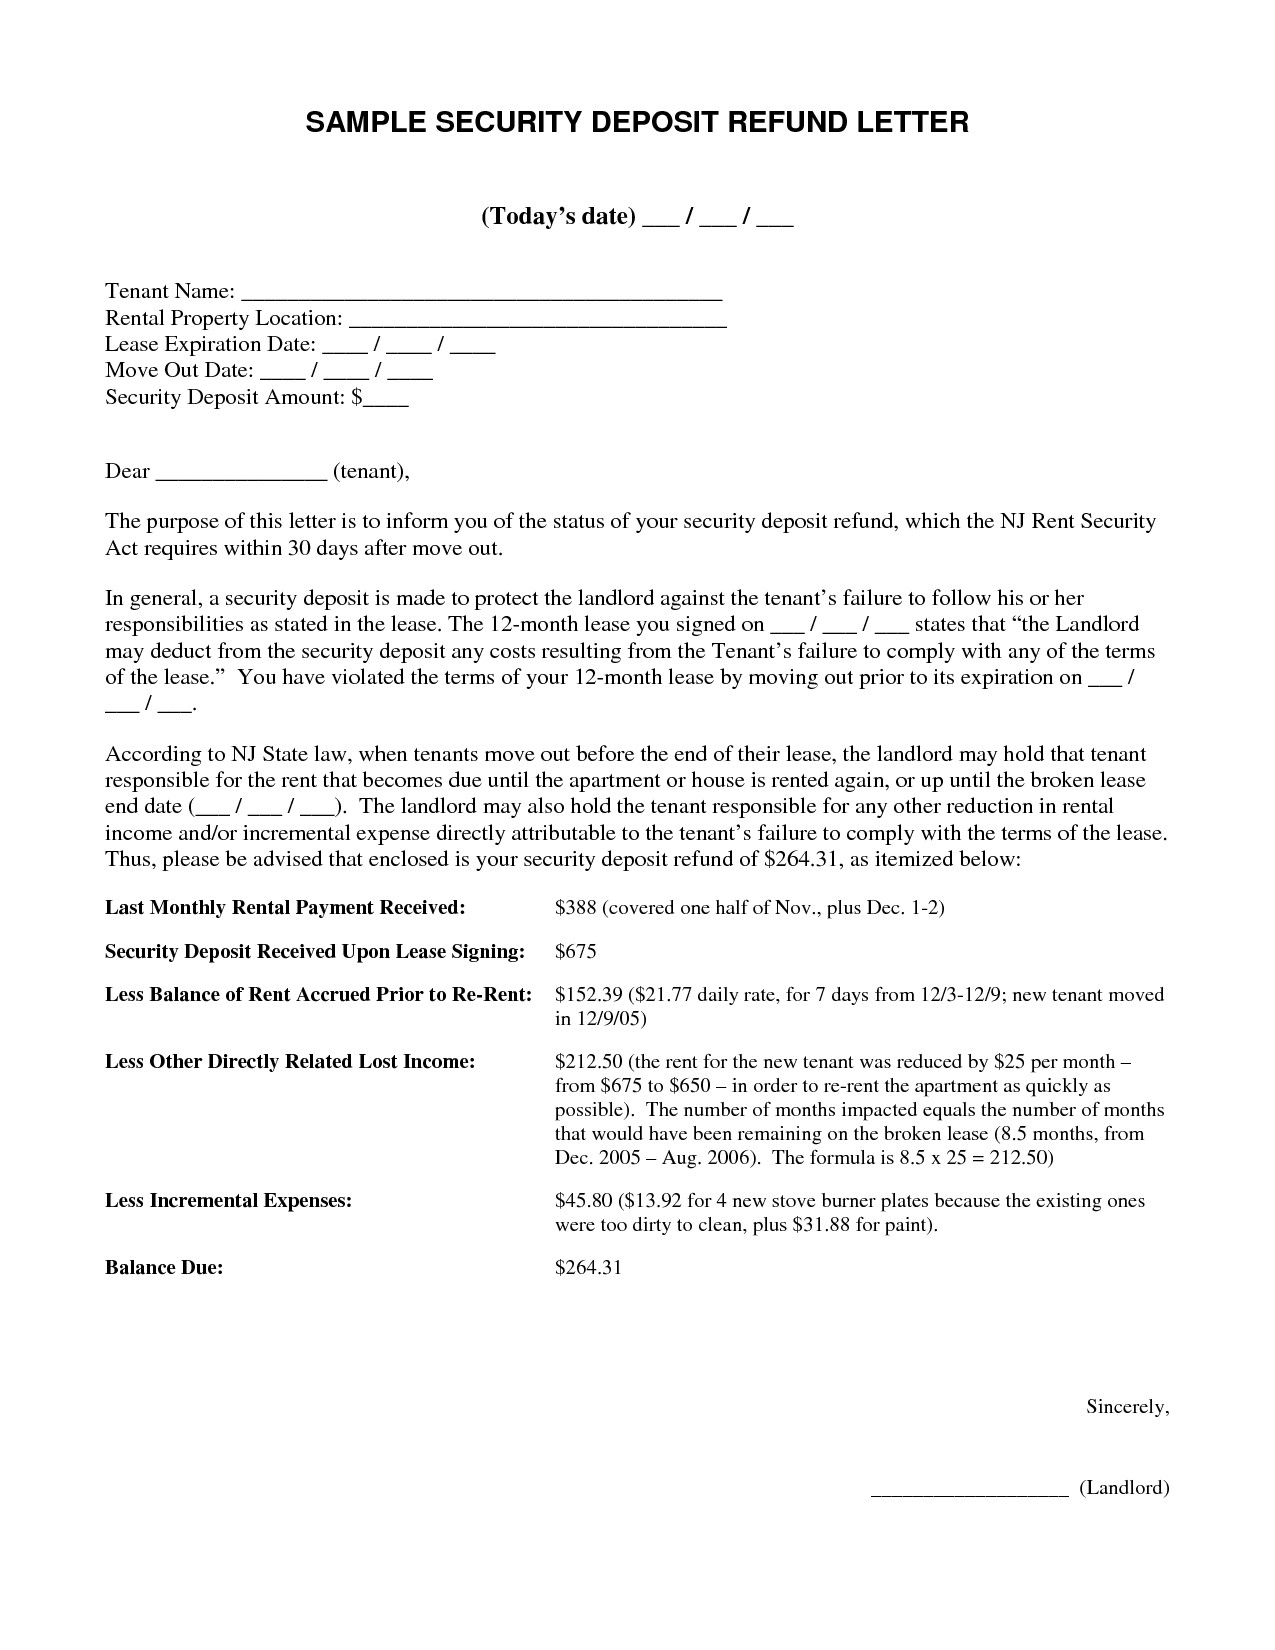 certificate of insurance request letter template archaicawful certificate insurance request letter template